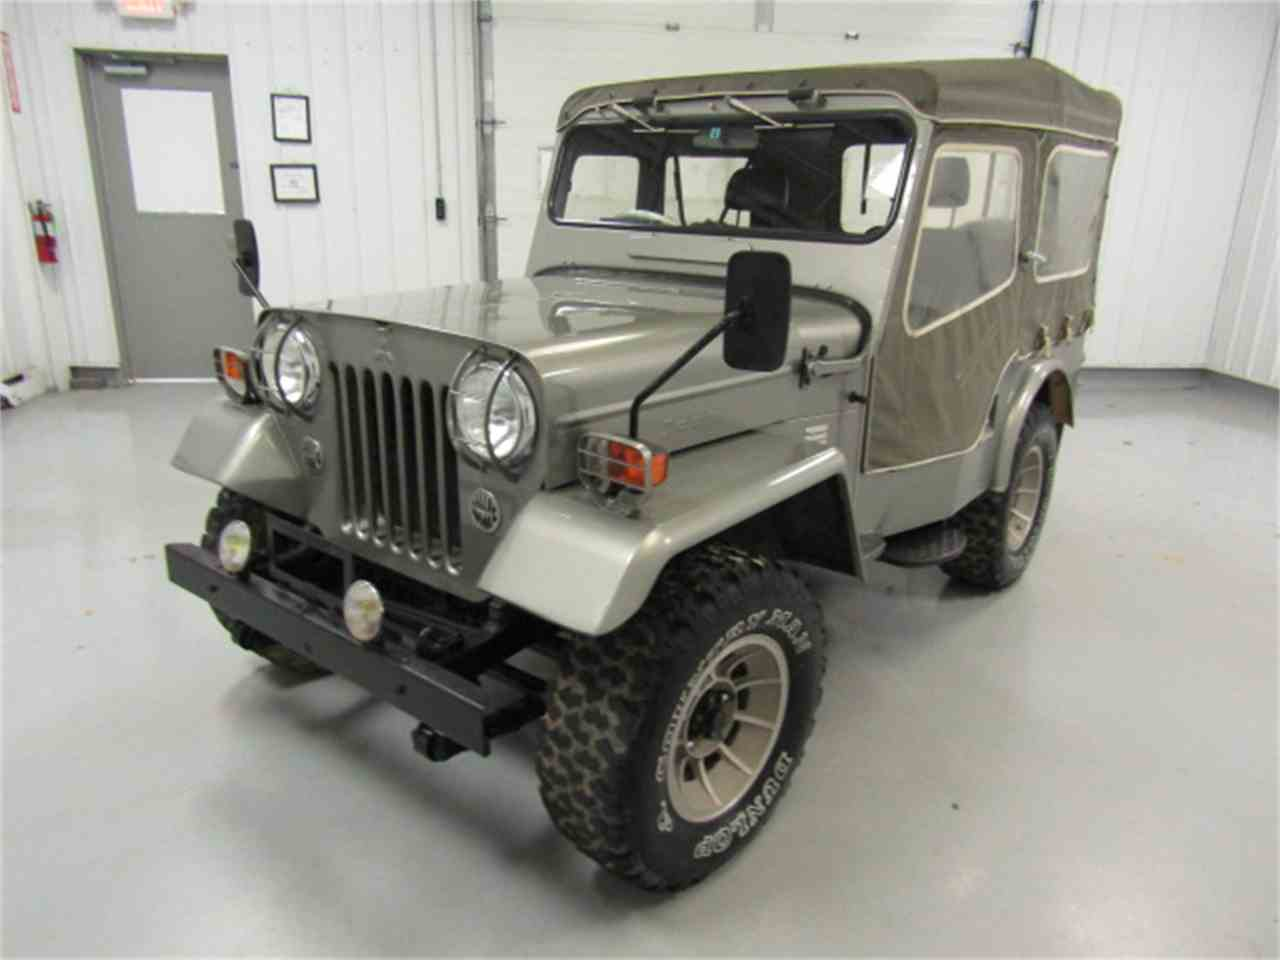 Large Picture of '79 Jeep located in Virginia Offered by Duncan Imports & Classic Cars - JM3M